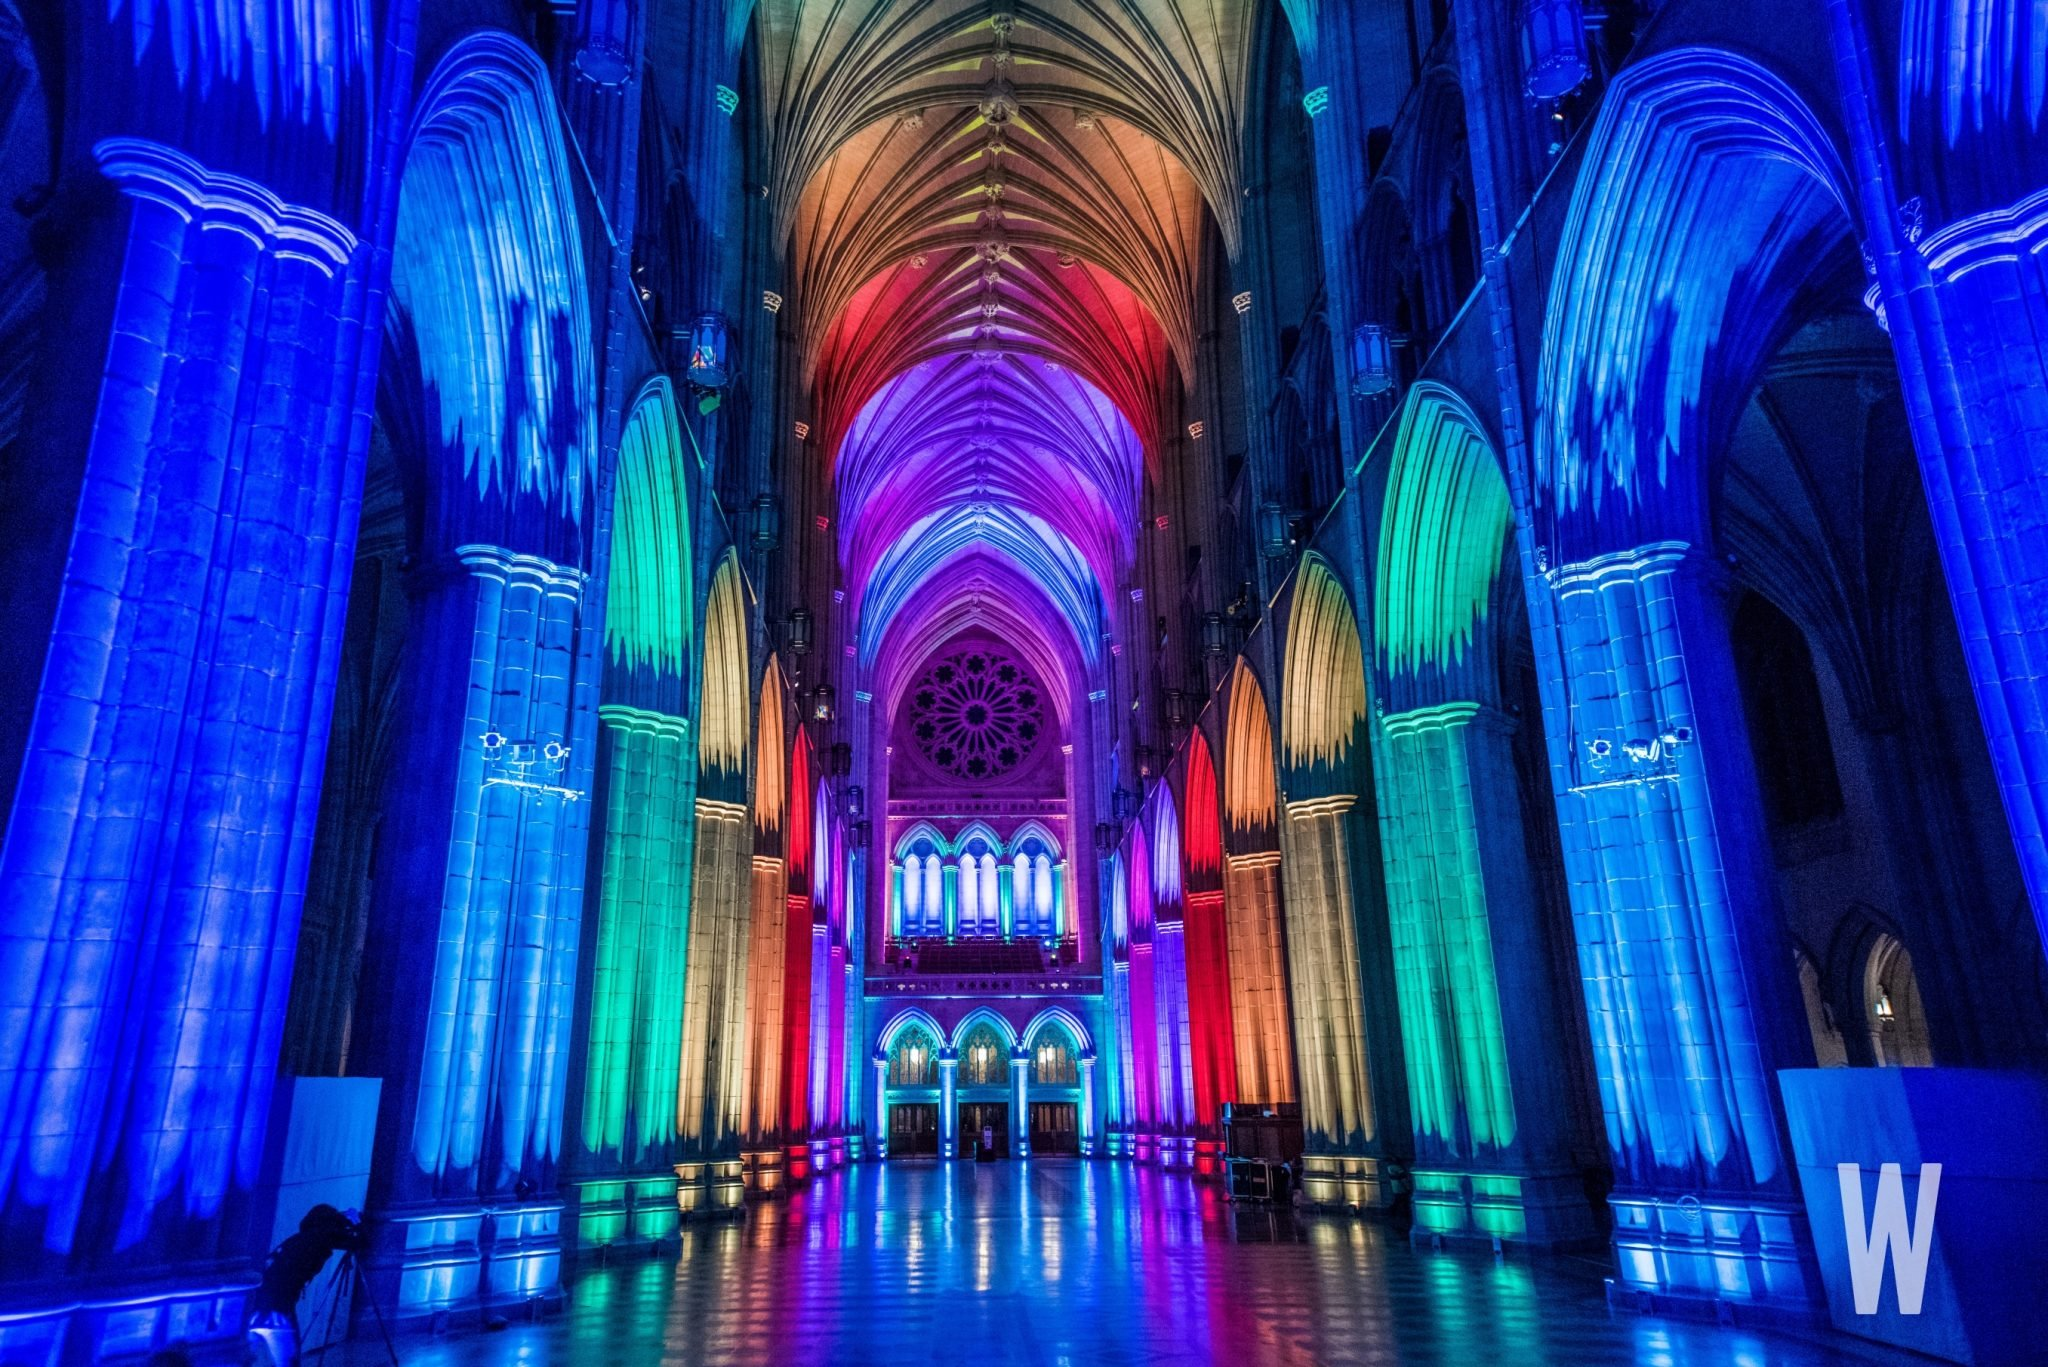 PHOTOS: The Washington National Cathedral Was Lit Last Night